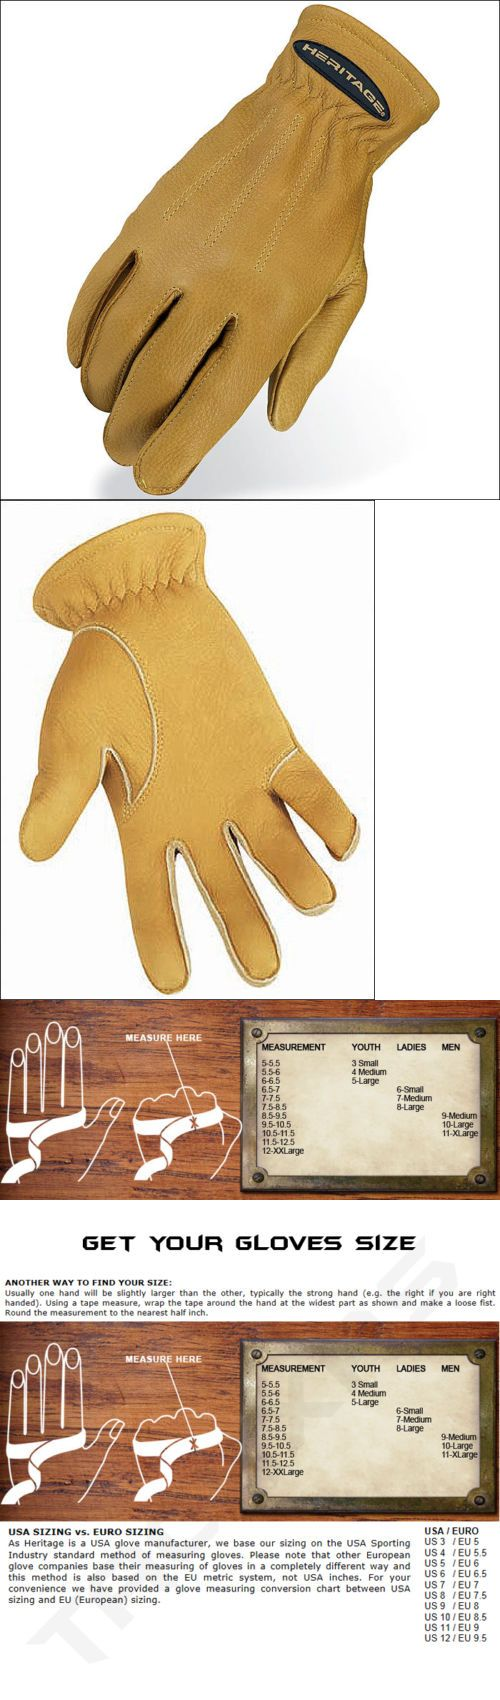 Riding Gloves 95104: 9 Size Heritage Sheepskin Trail Natural Tan Riding Gloves Horse Equestrian -> BUY IT NOW ONLY: $38.95 on eBay!